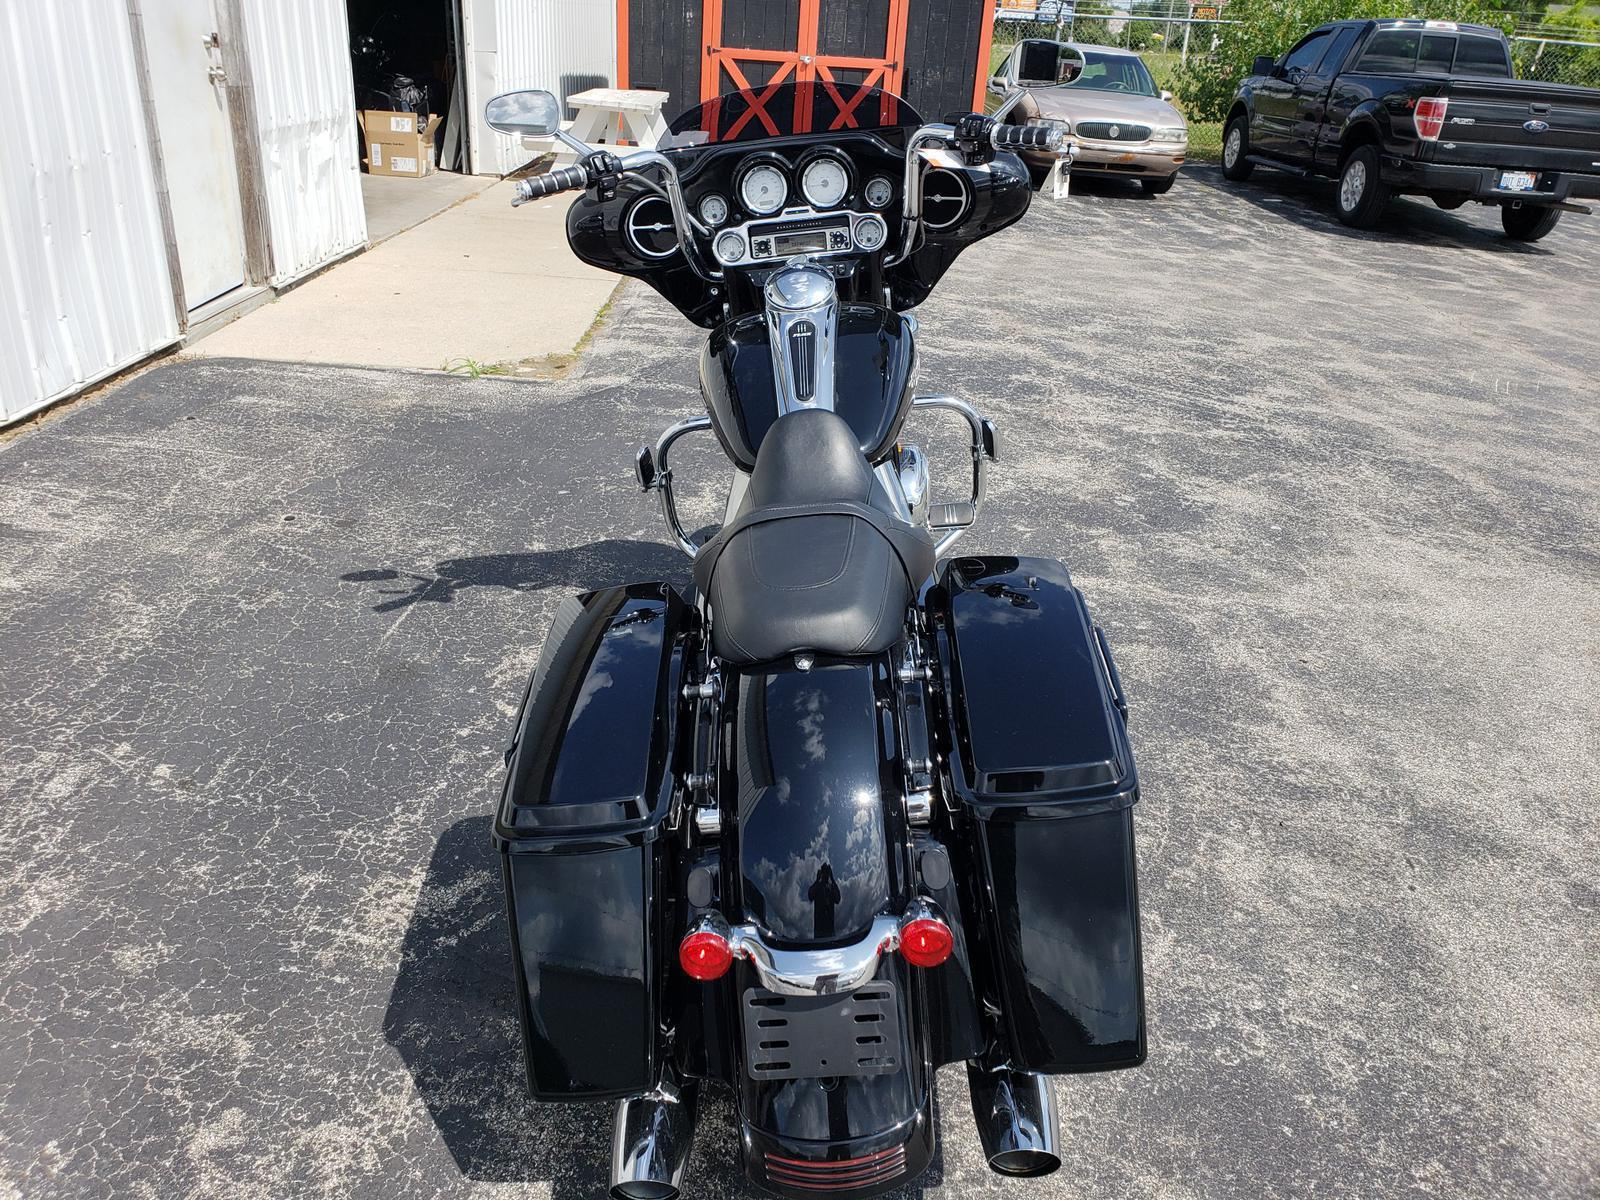 2012 Harley Davidson Flhx Street Glide For Sale In Bay City Mi Home Data Cable Wiring Together With Brake Cables And Previous